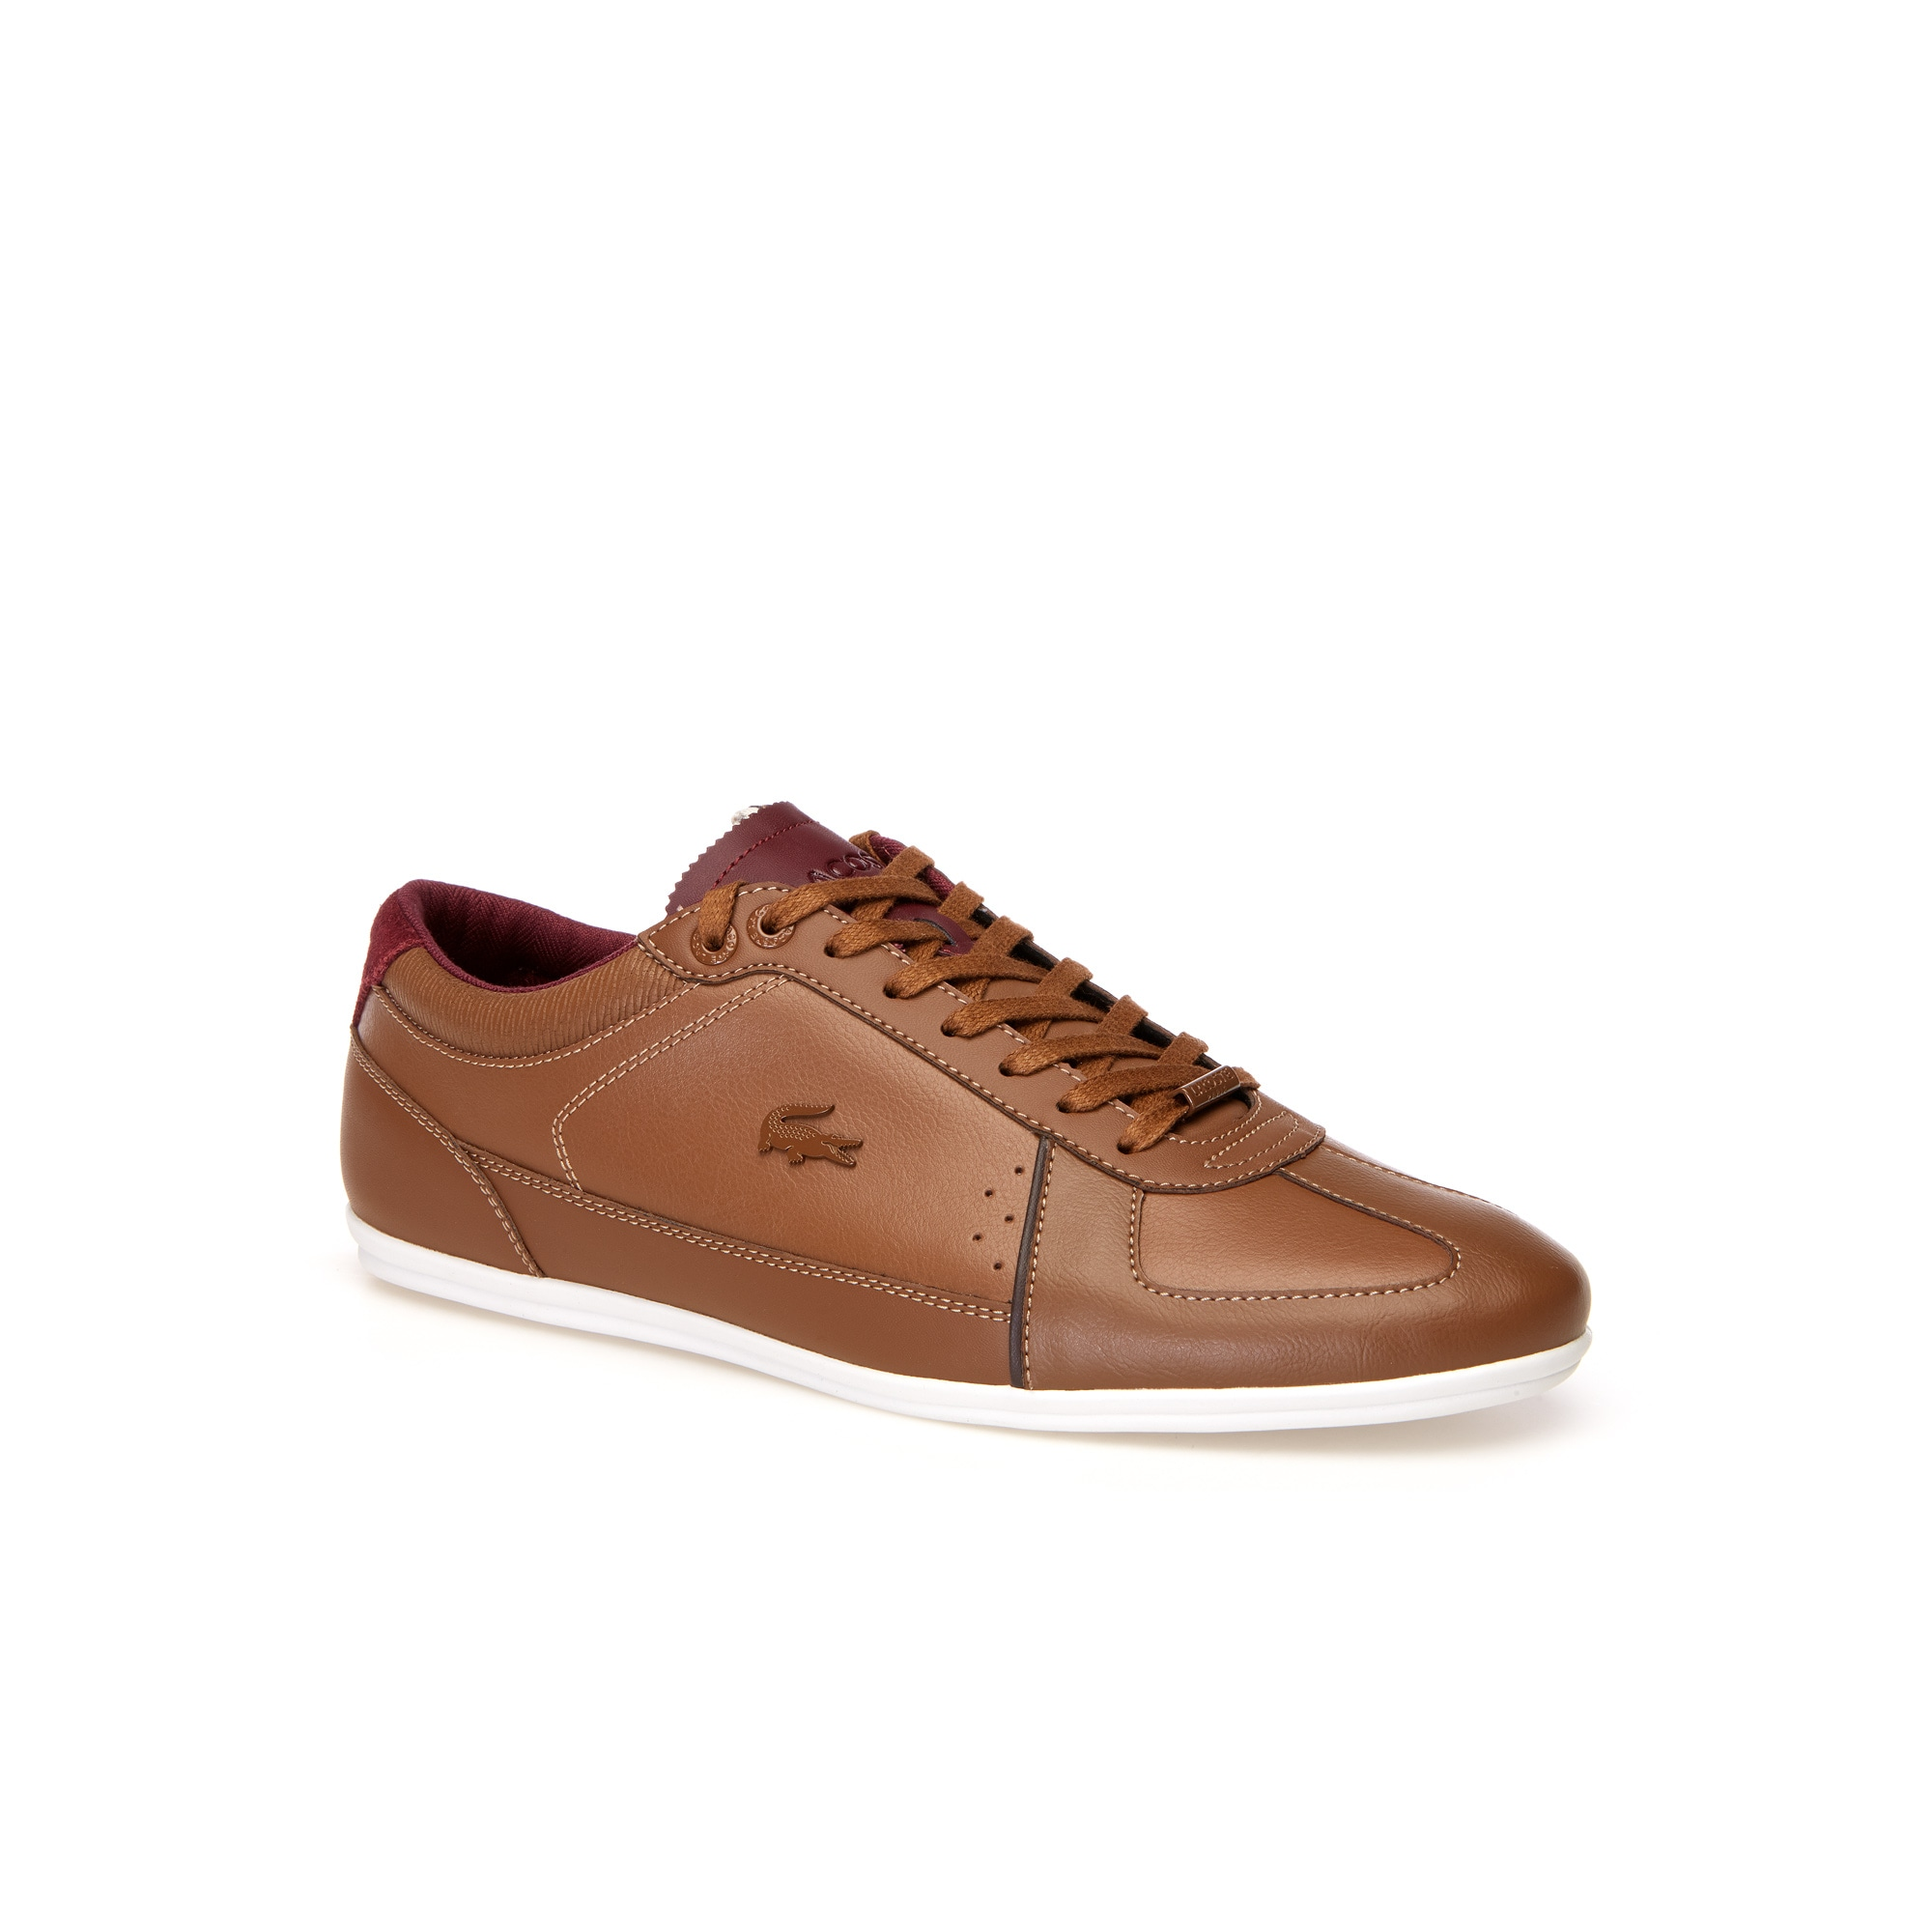 Men's Evara Leather and Suede Trainers